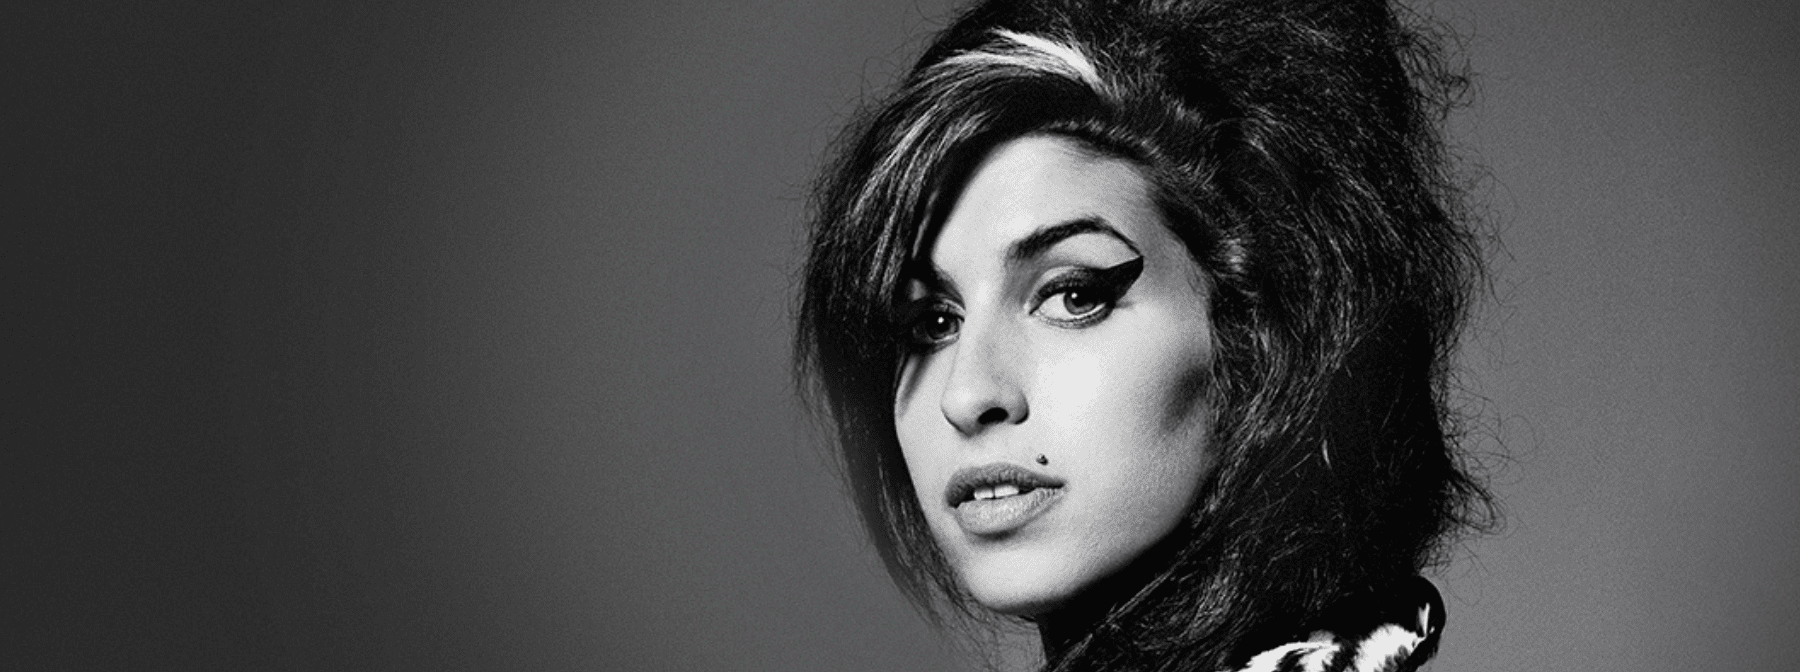 FRANKLY AMY: THE AMY WINEHOUSE COLLABORATION